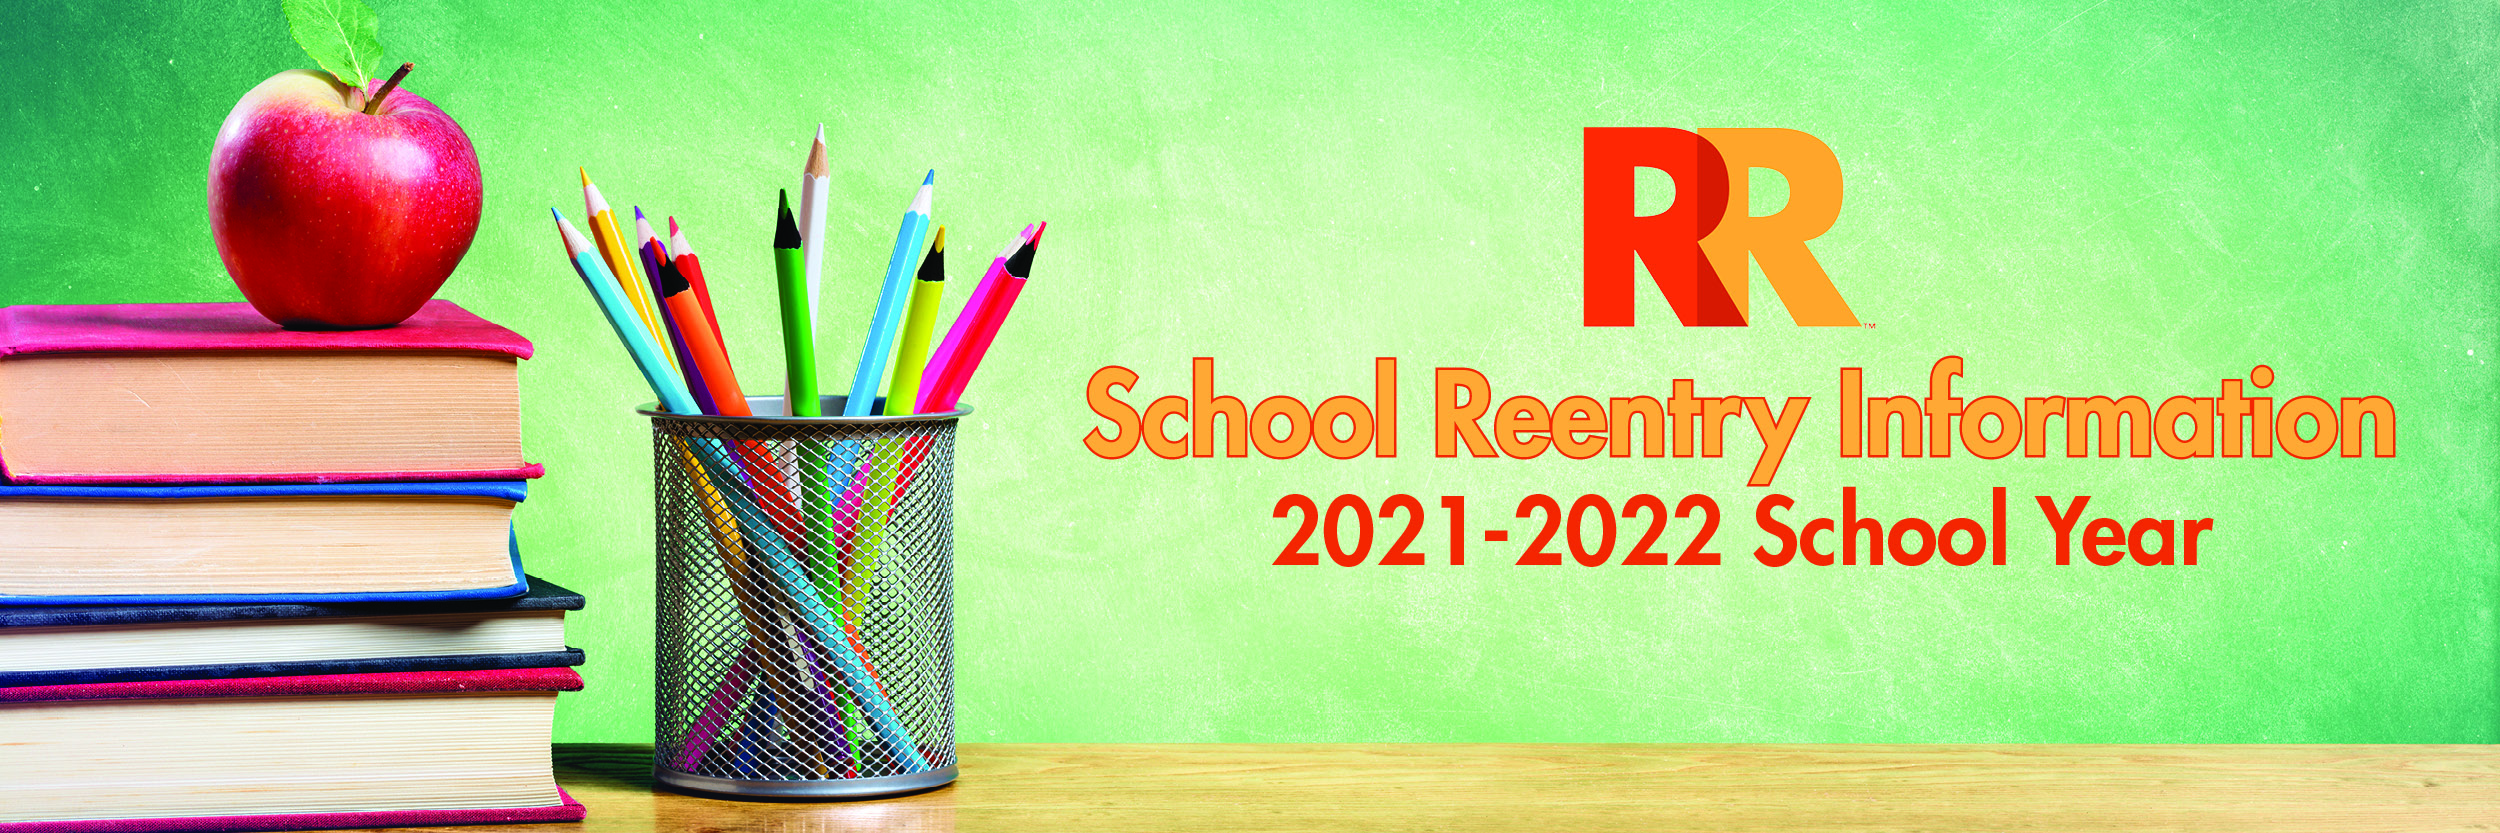 School Reentry Information for the 21-22 SY